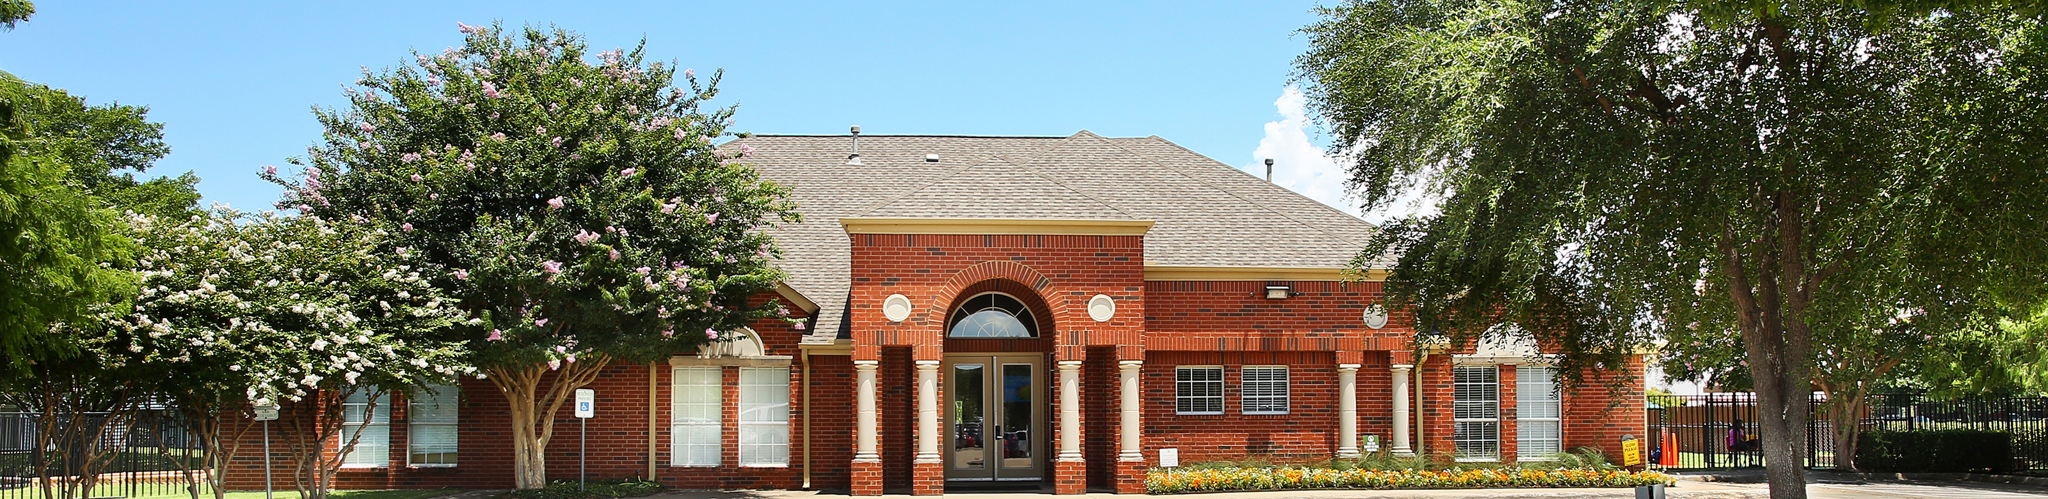 Exterior of a Primrose School of Valley Ranch